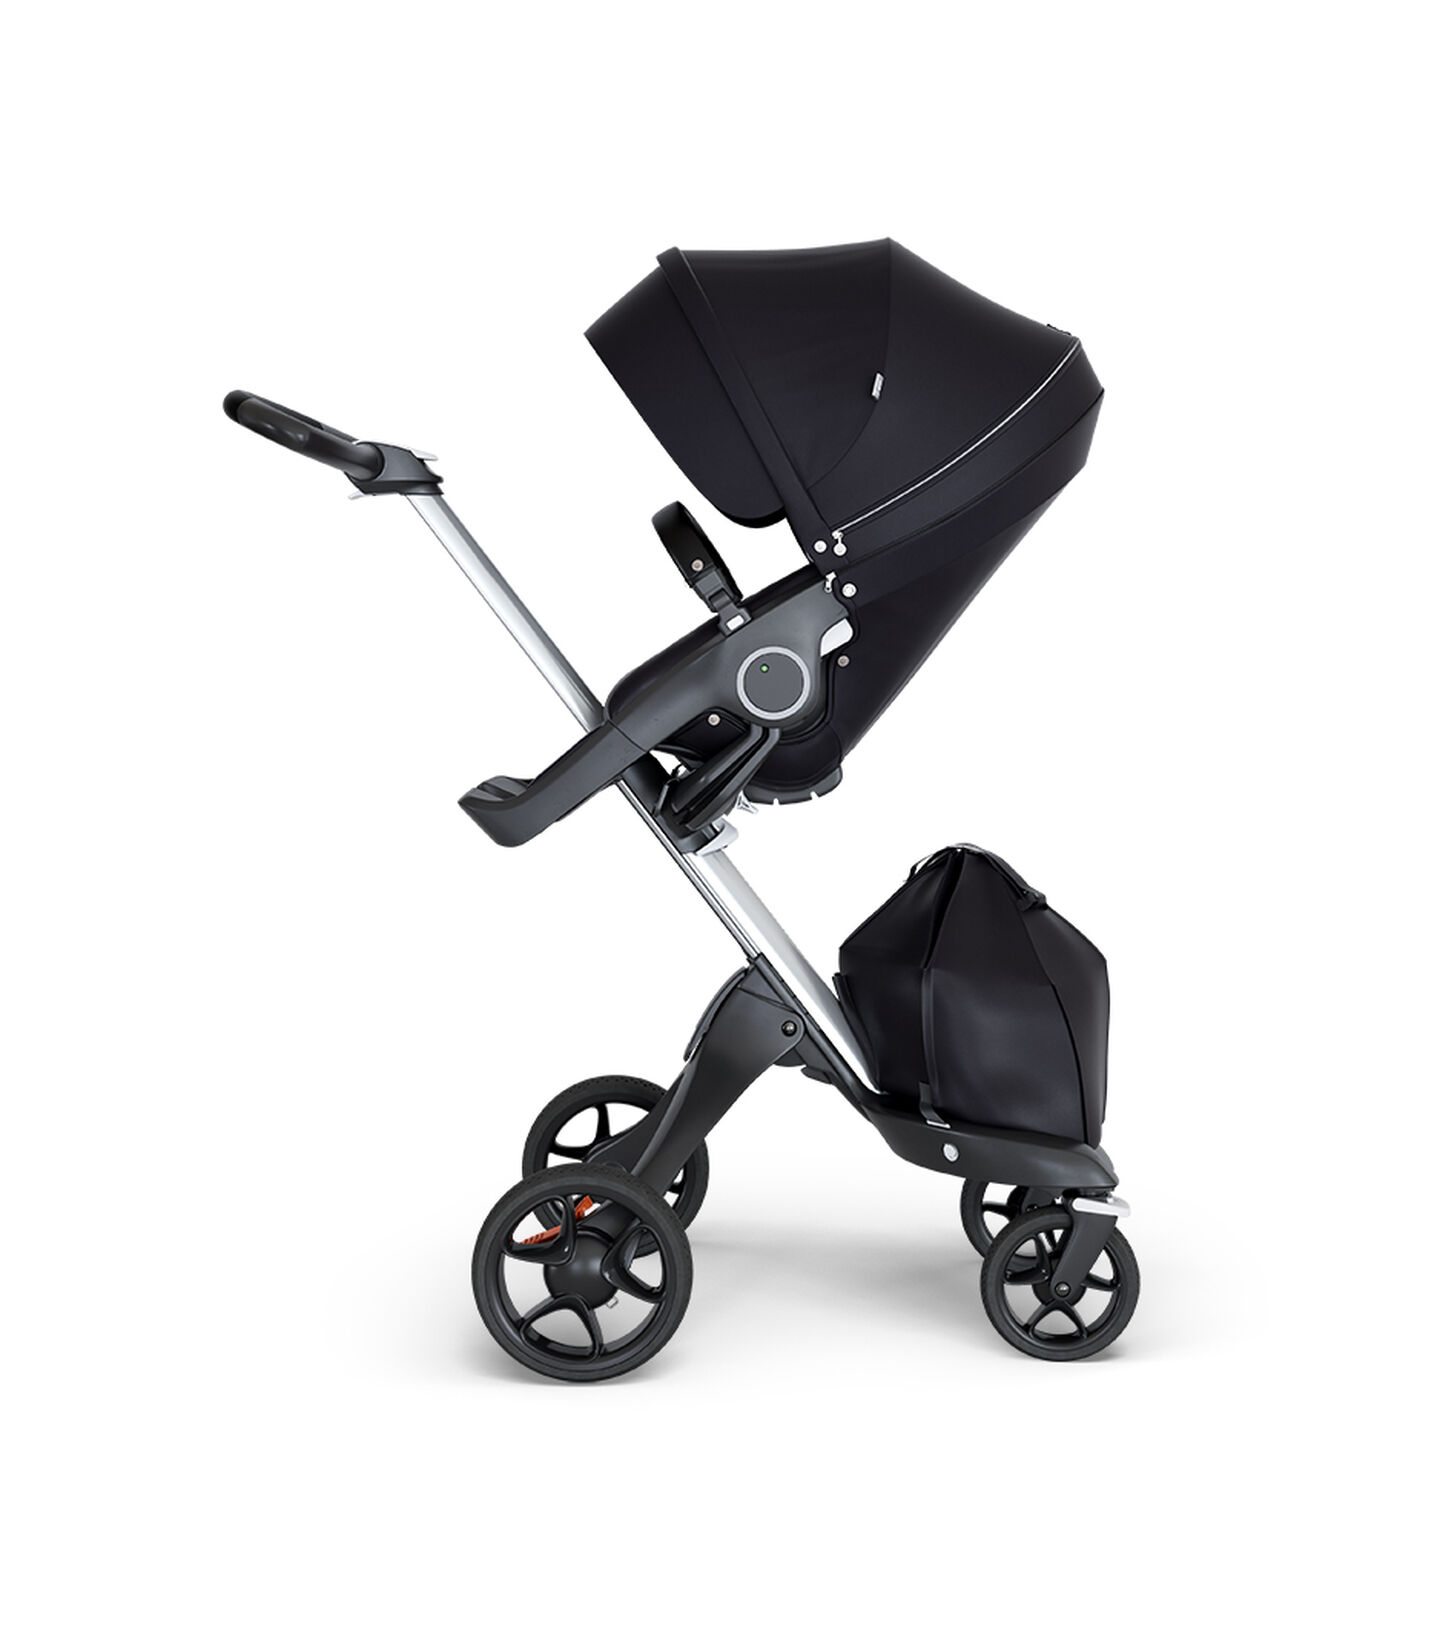 Stokke® Xplory® 6 Silver Chassis - Black Handle Black, Negro, mainview view 2